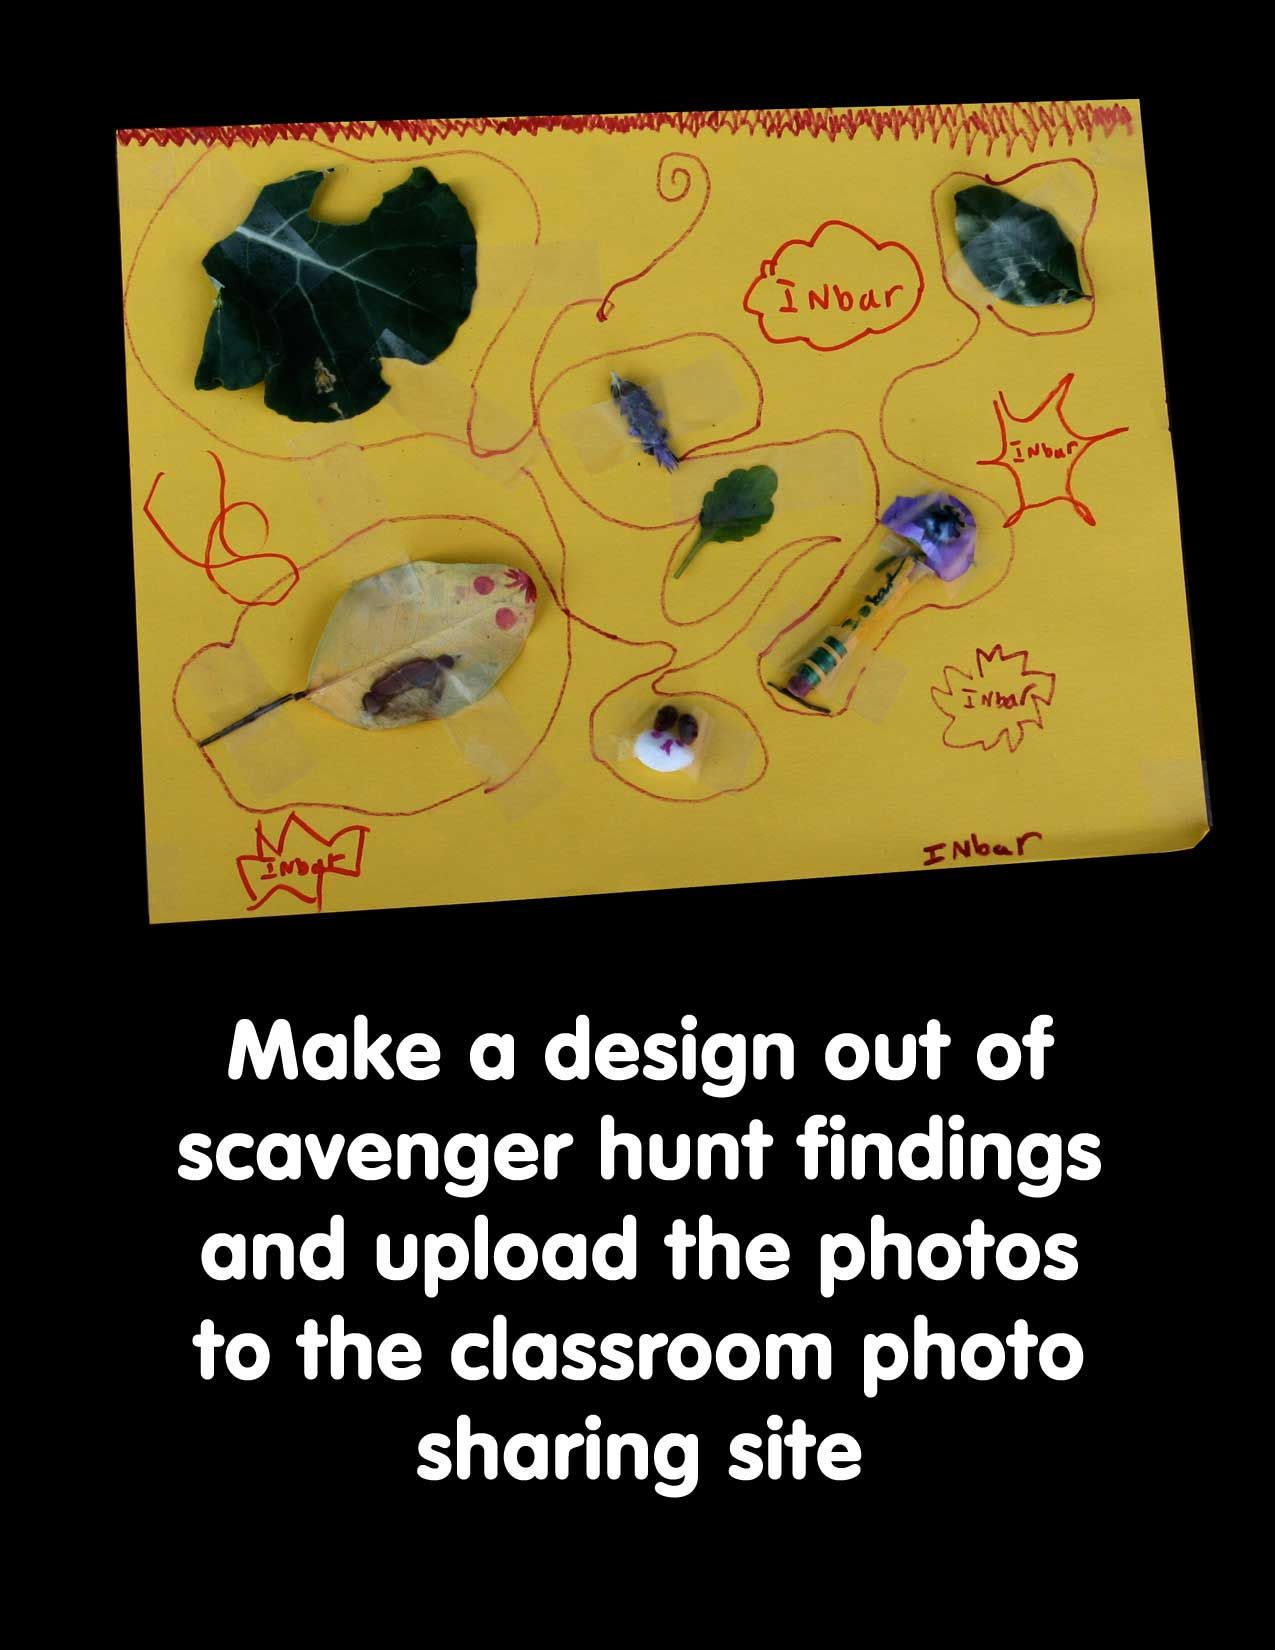 scavenger hunt design #2